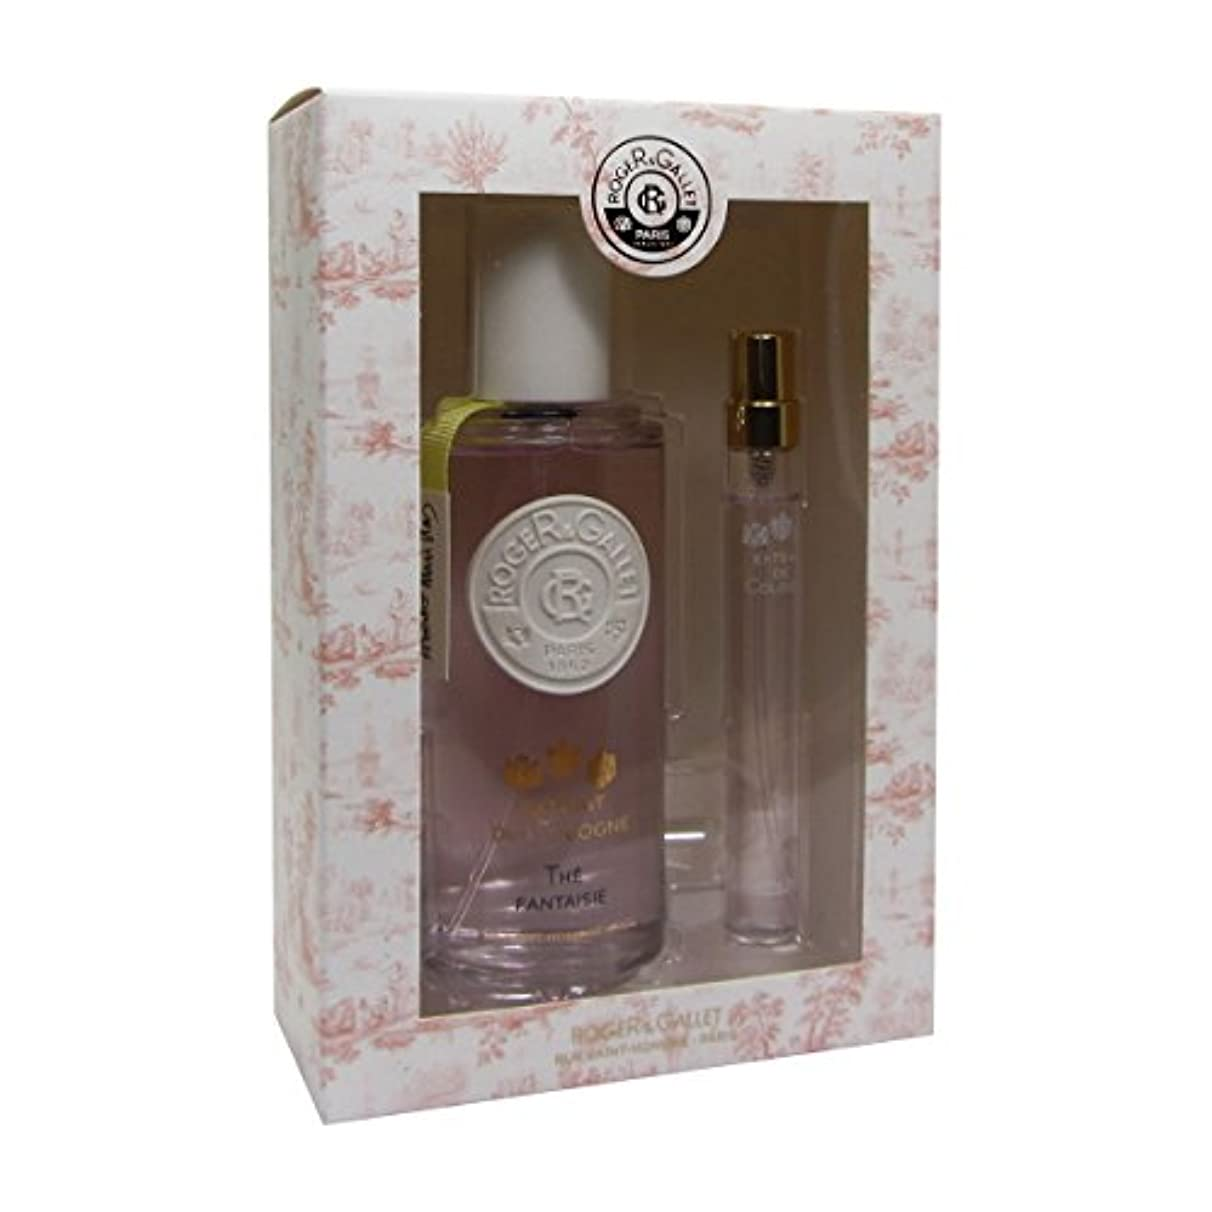 甘い結婚した抜本的なRoger Gallet The Fantaisie Cologne Extract 100ml + 10ml [並行輸入品]